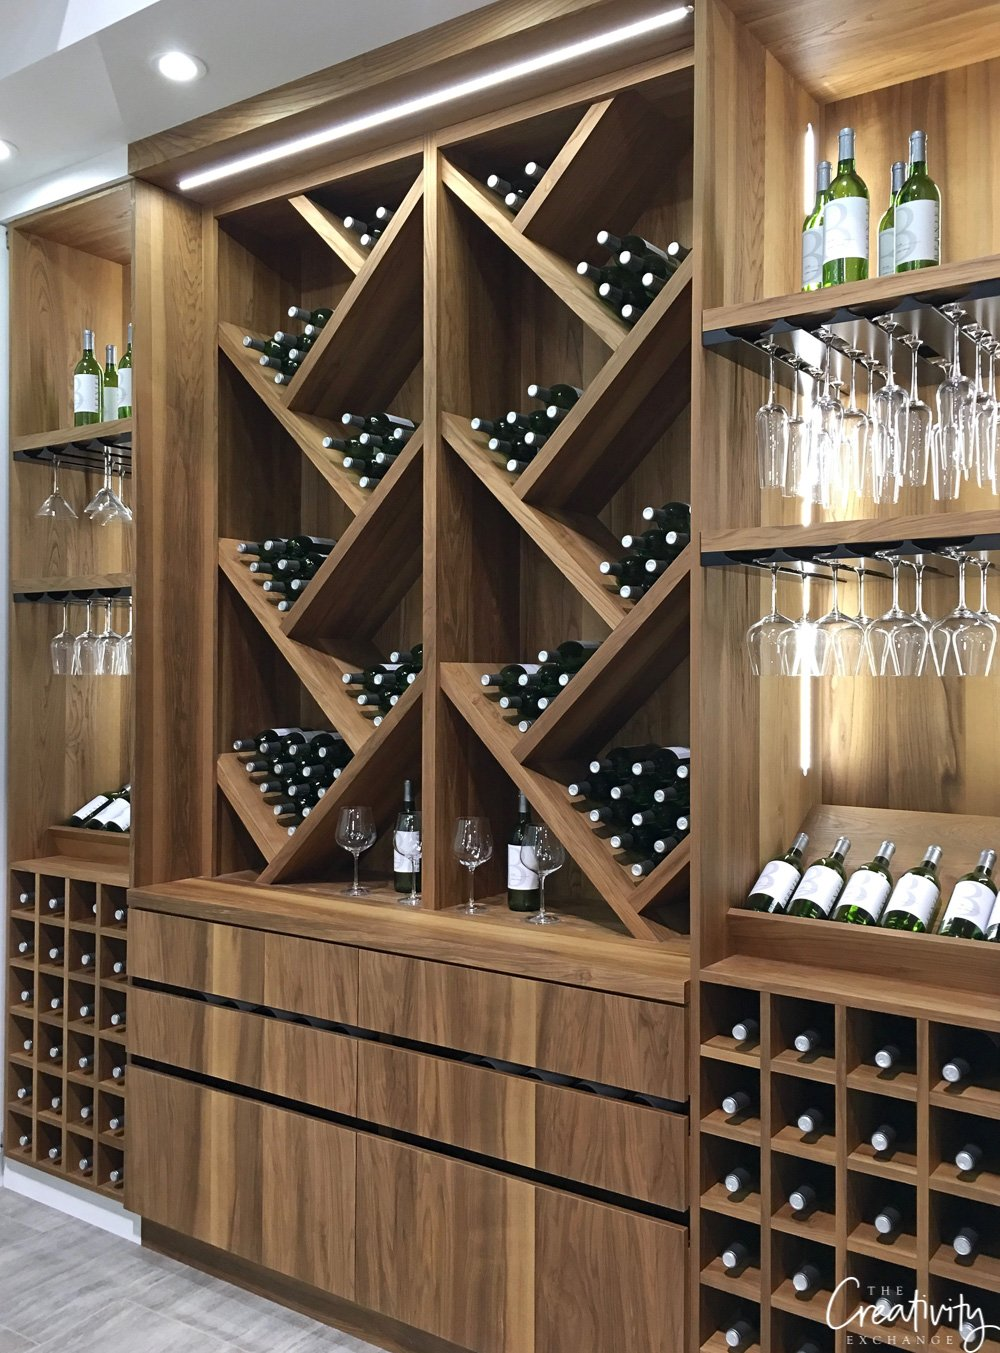 Built in wine storage cabinetry